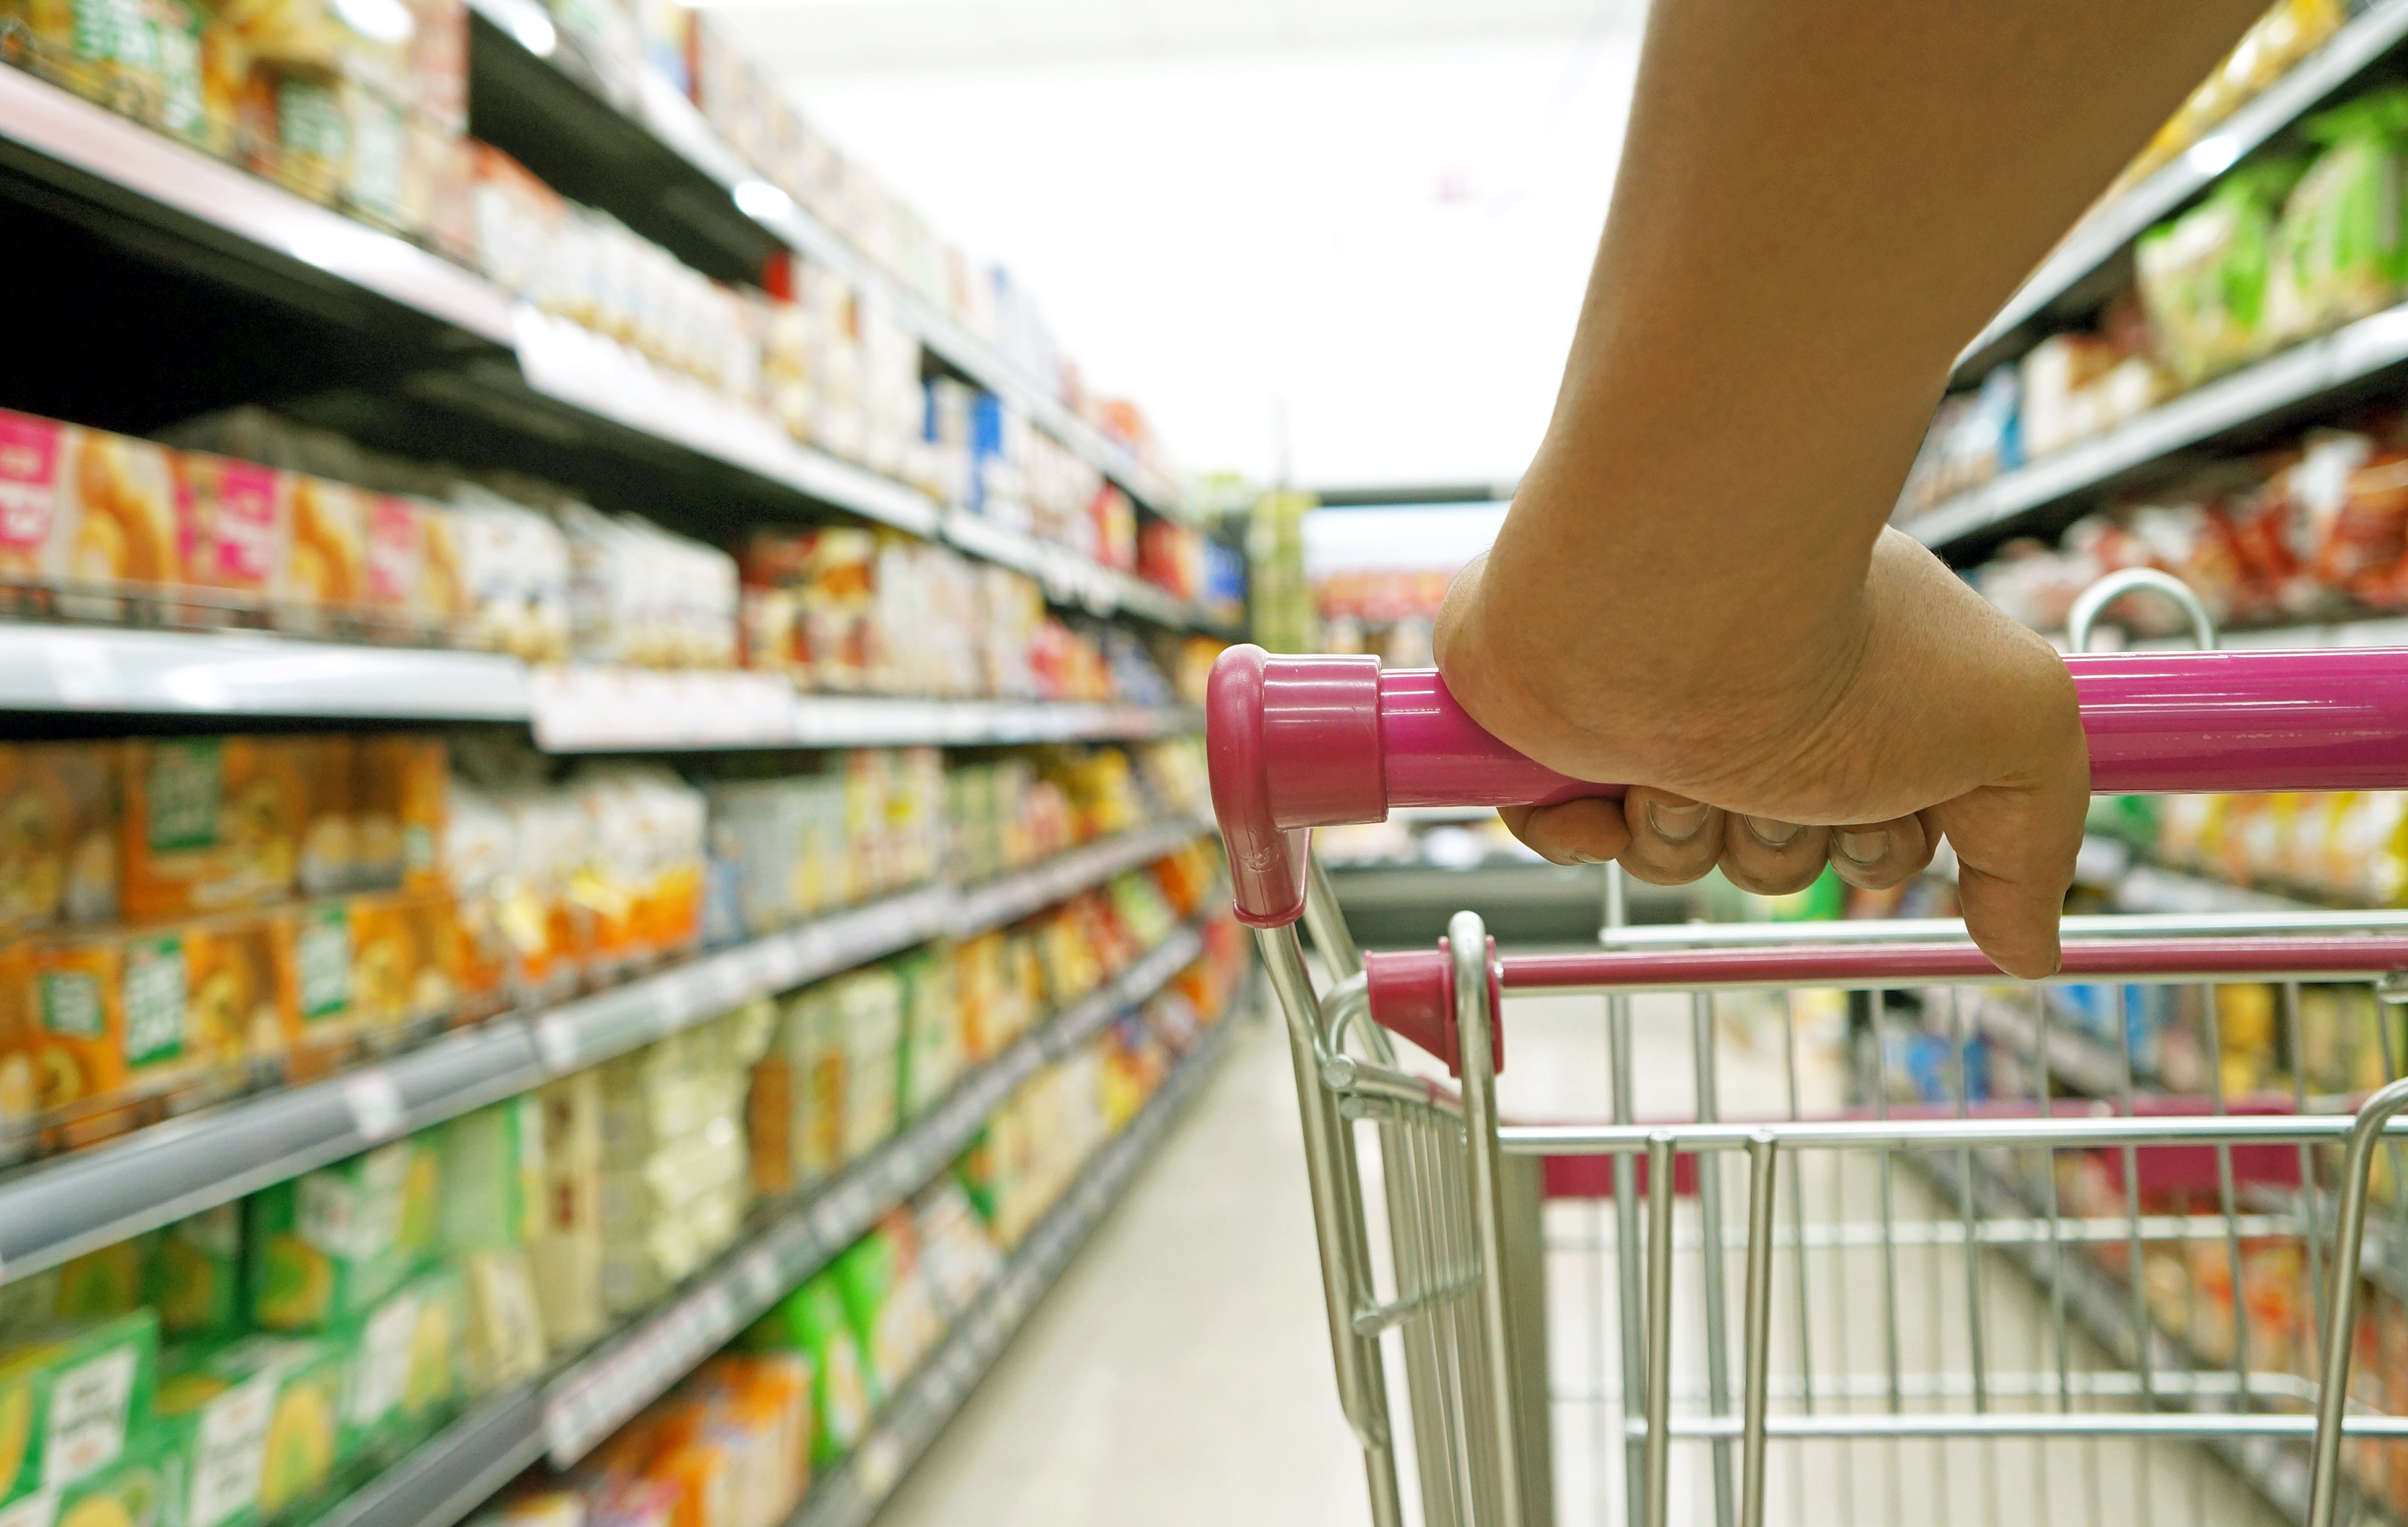 The Prime Minister says studies will look into supermarket pricing of groceries, and building...